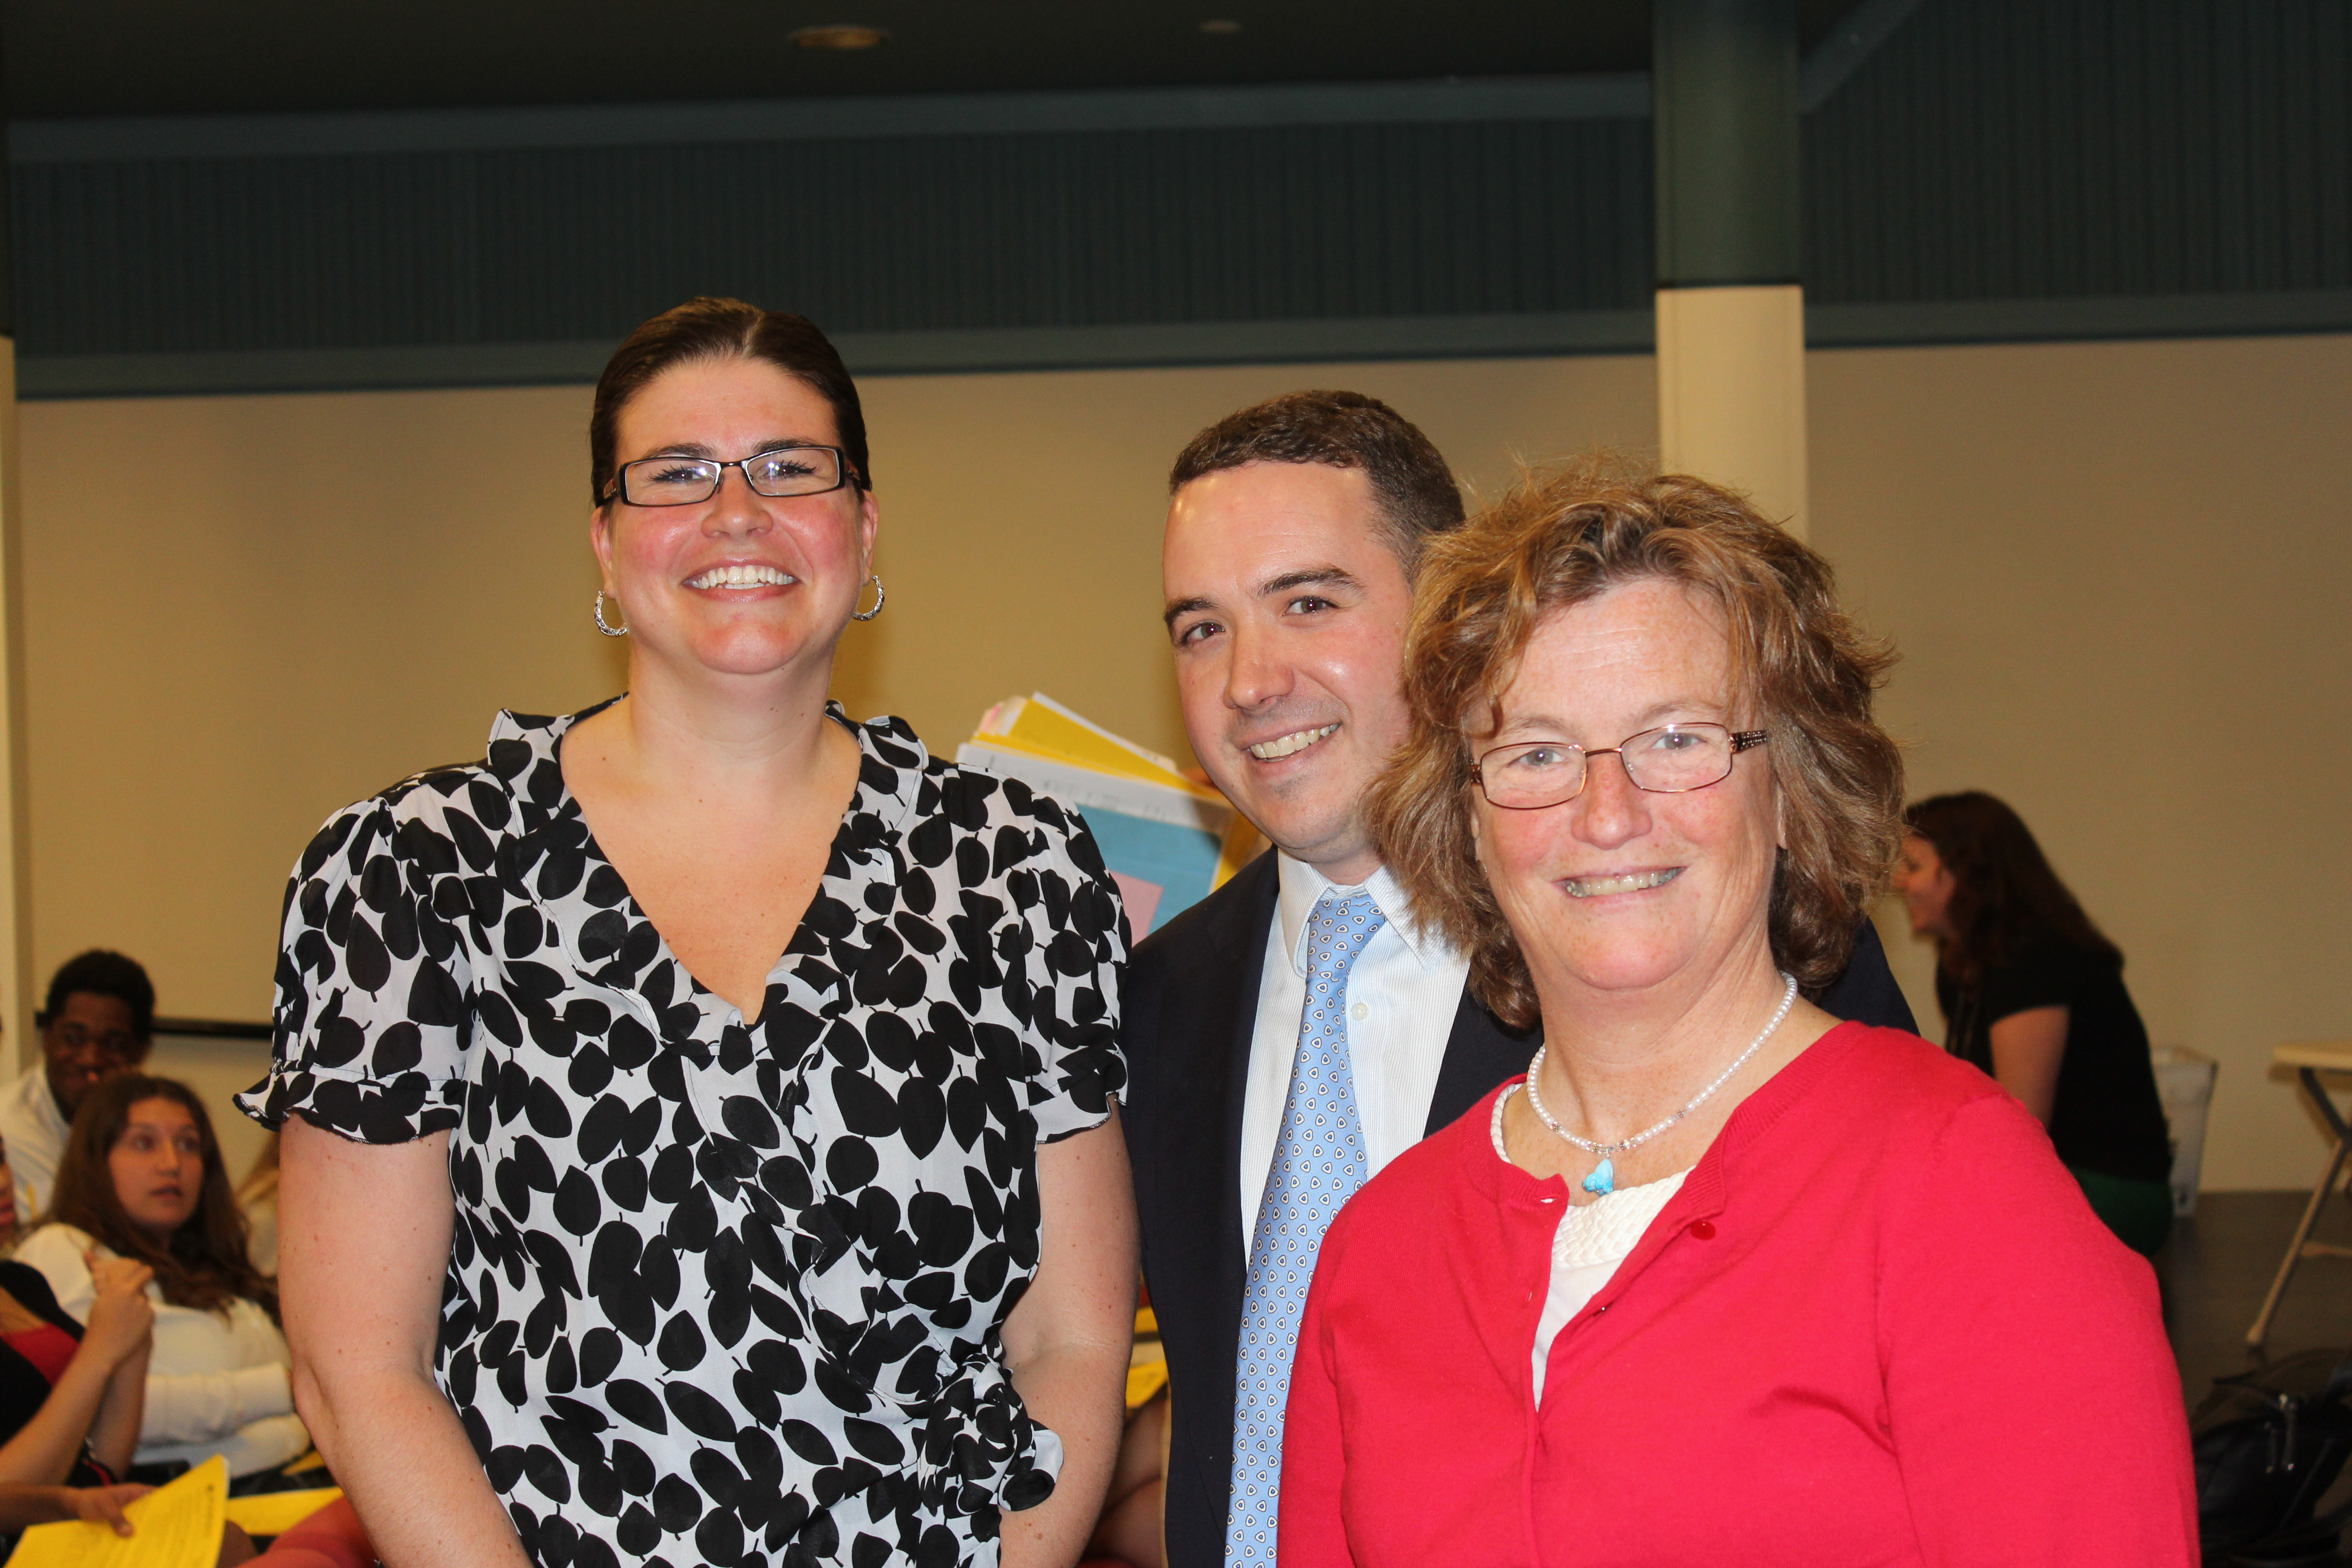 In the photo, l-r: College Admission reps Kelly Montrym from Boston College,  Ian Harkness from Gettysburg College, and Debra Johns from Yale.